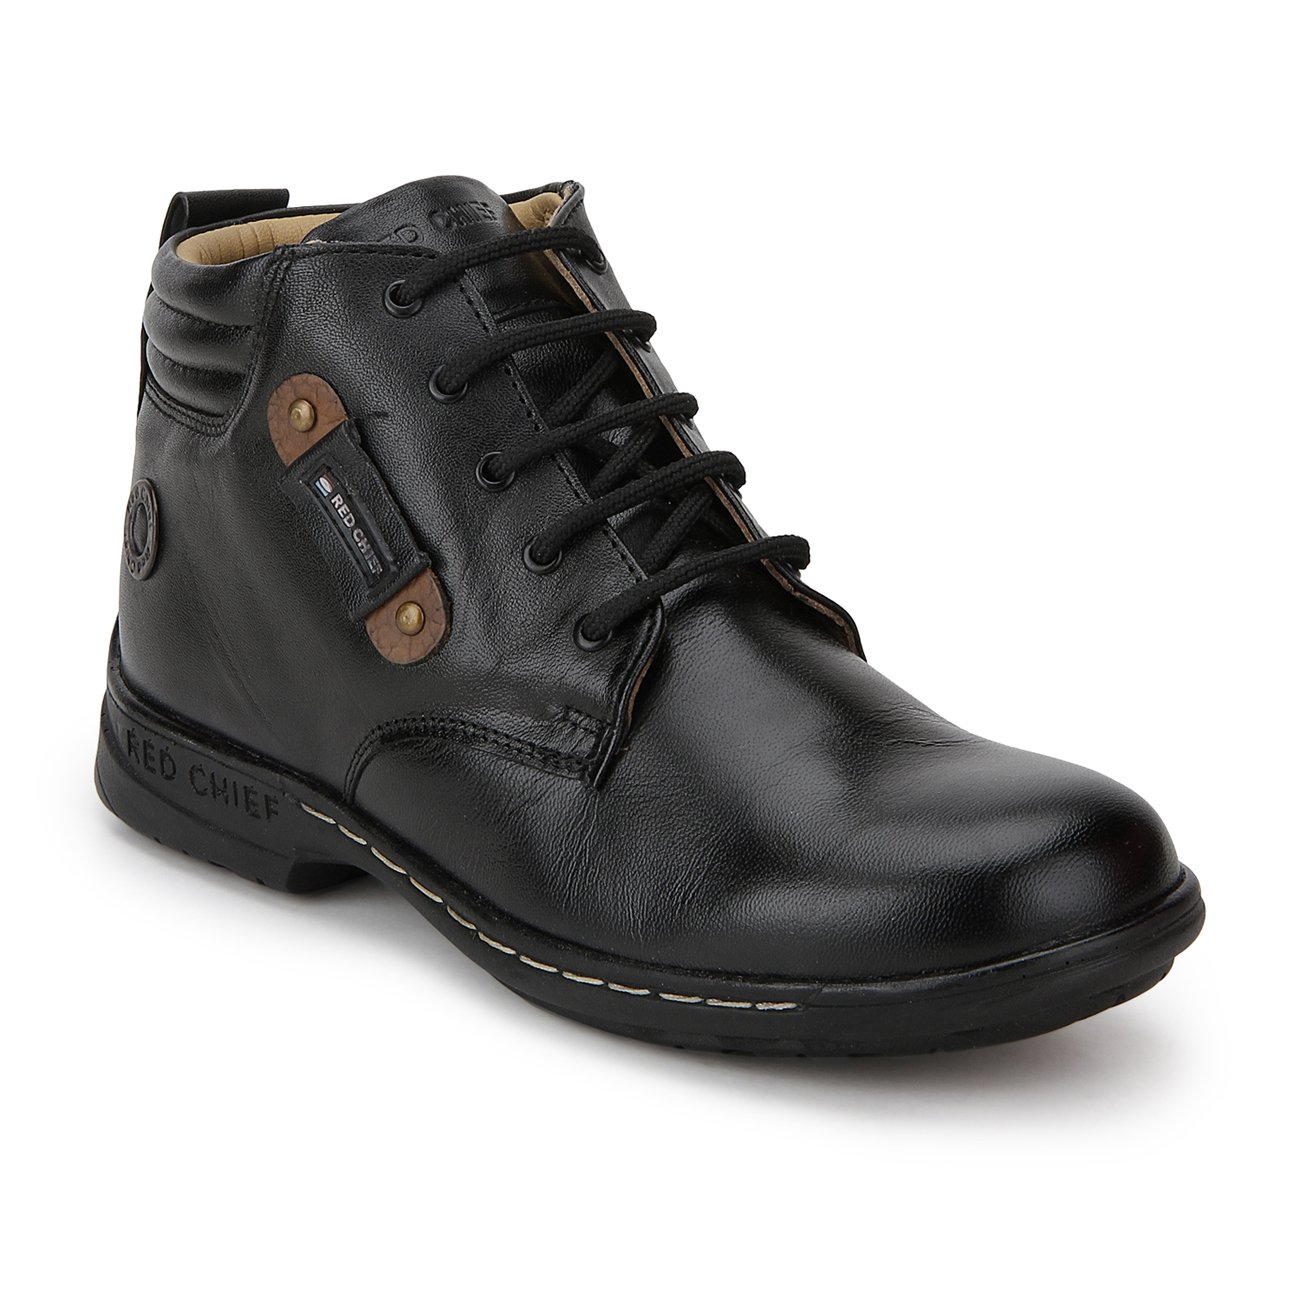 Buy Red Chief Men's Leather Boots at